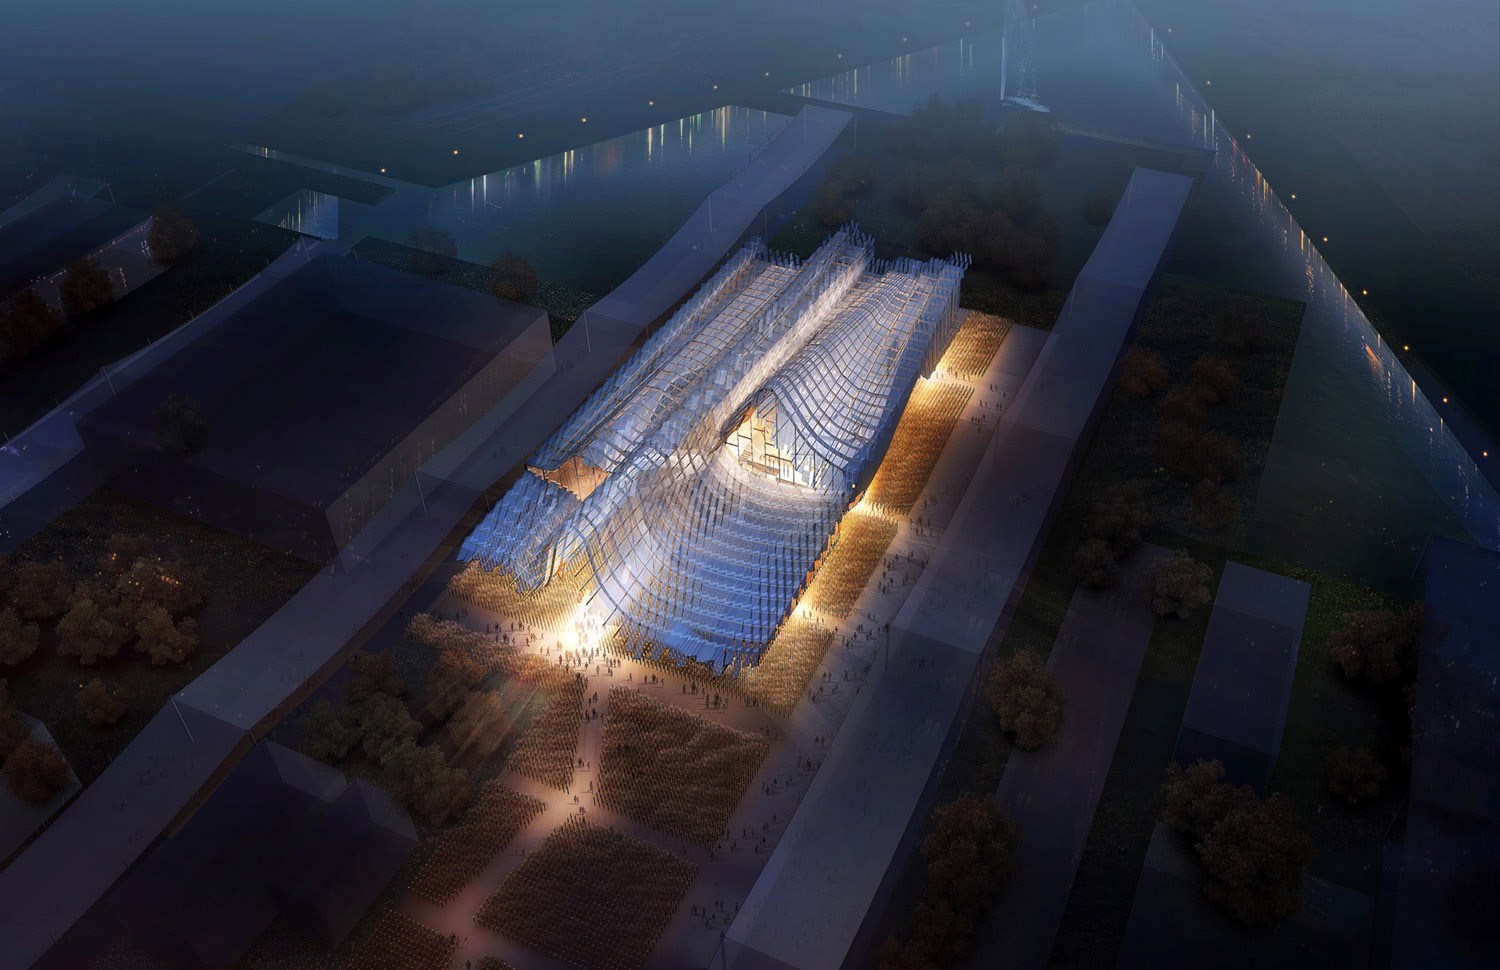 Chinese Pavilion at the 2015 Milan Expo design by Studio Link-Arc Teams with Tsinghua University